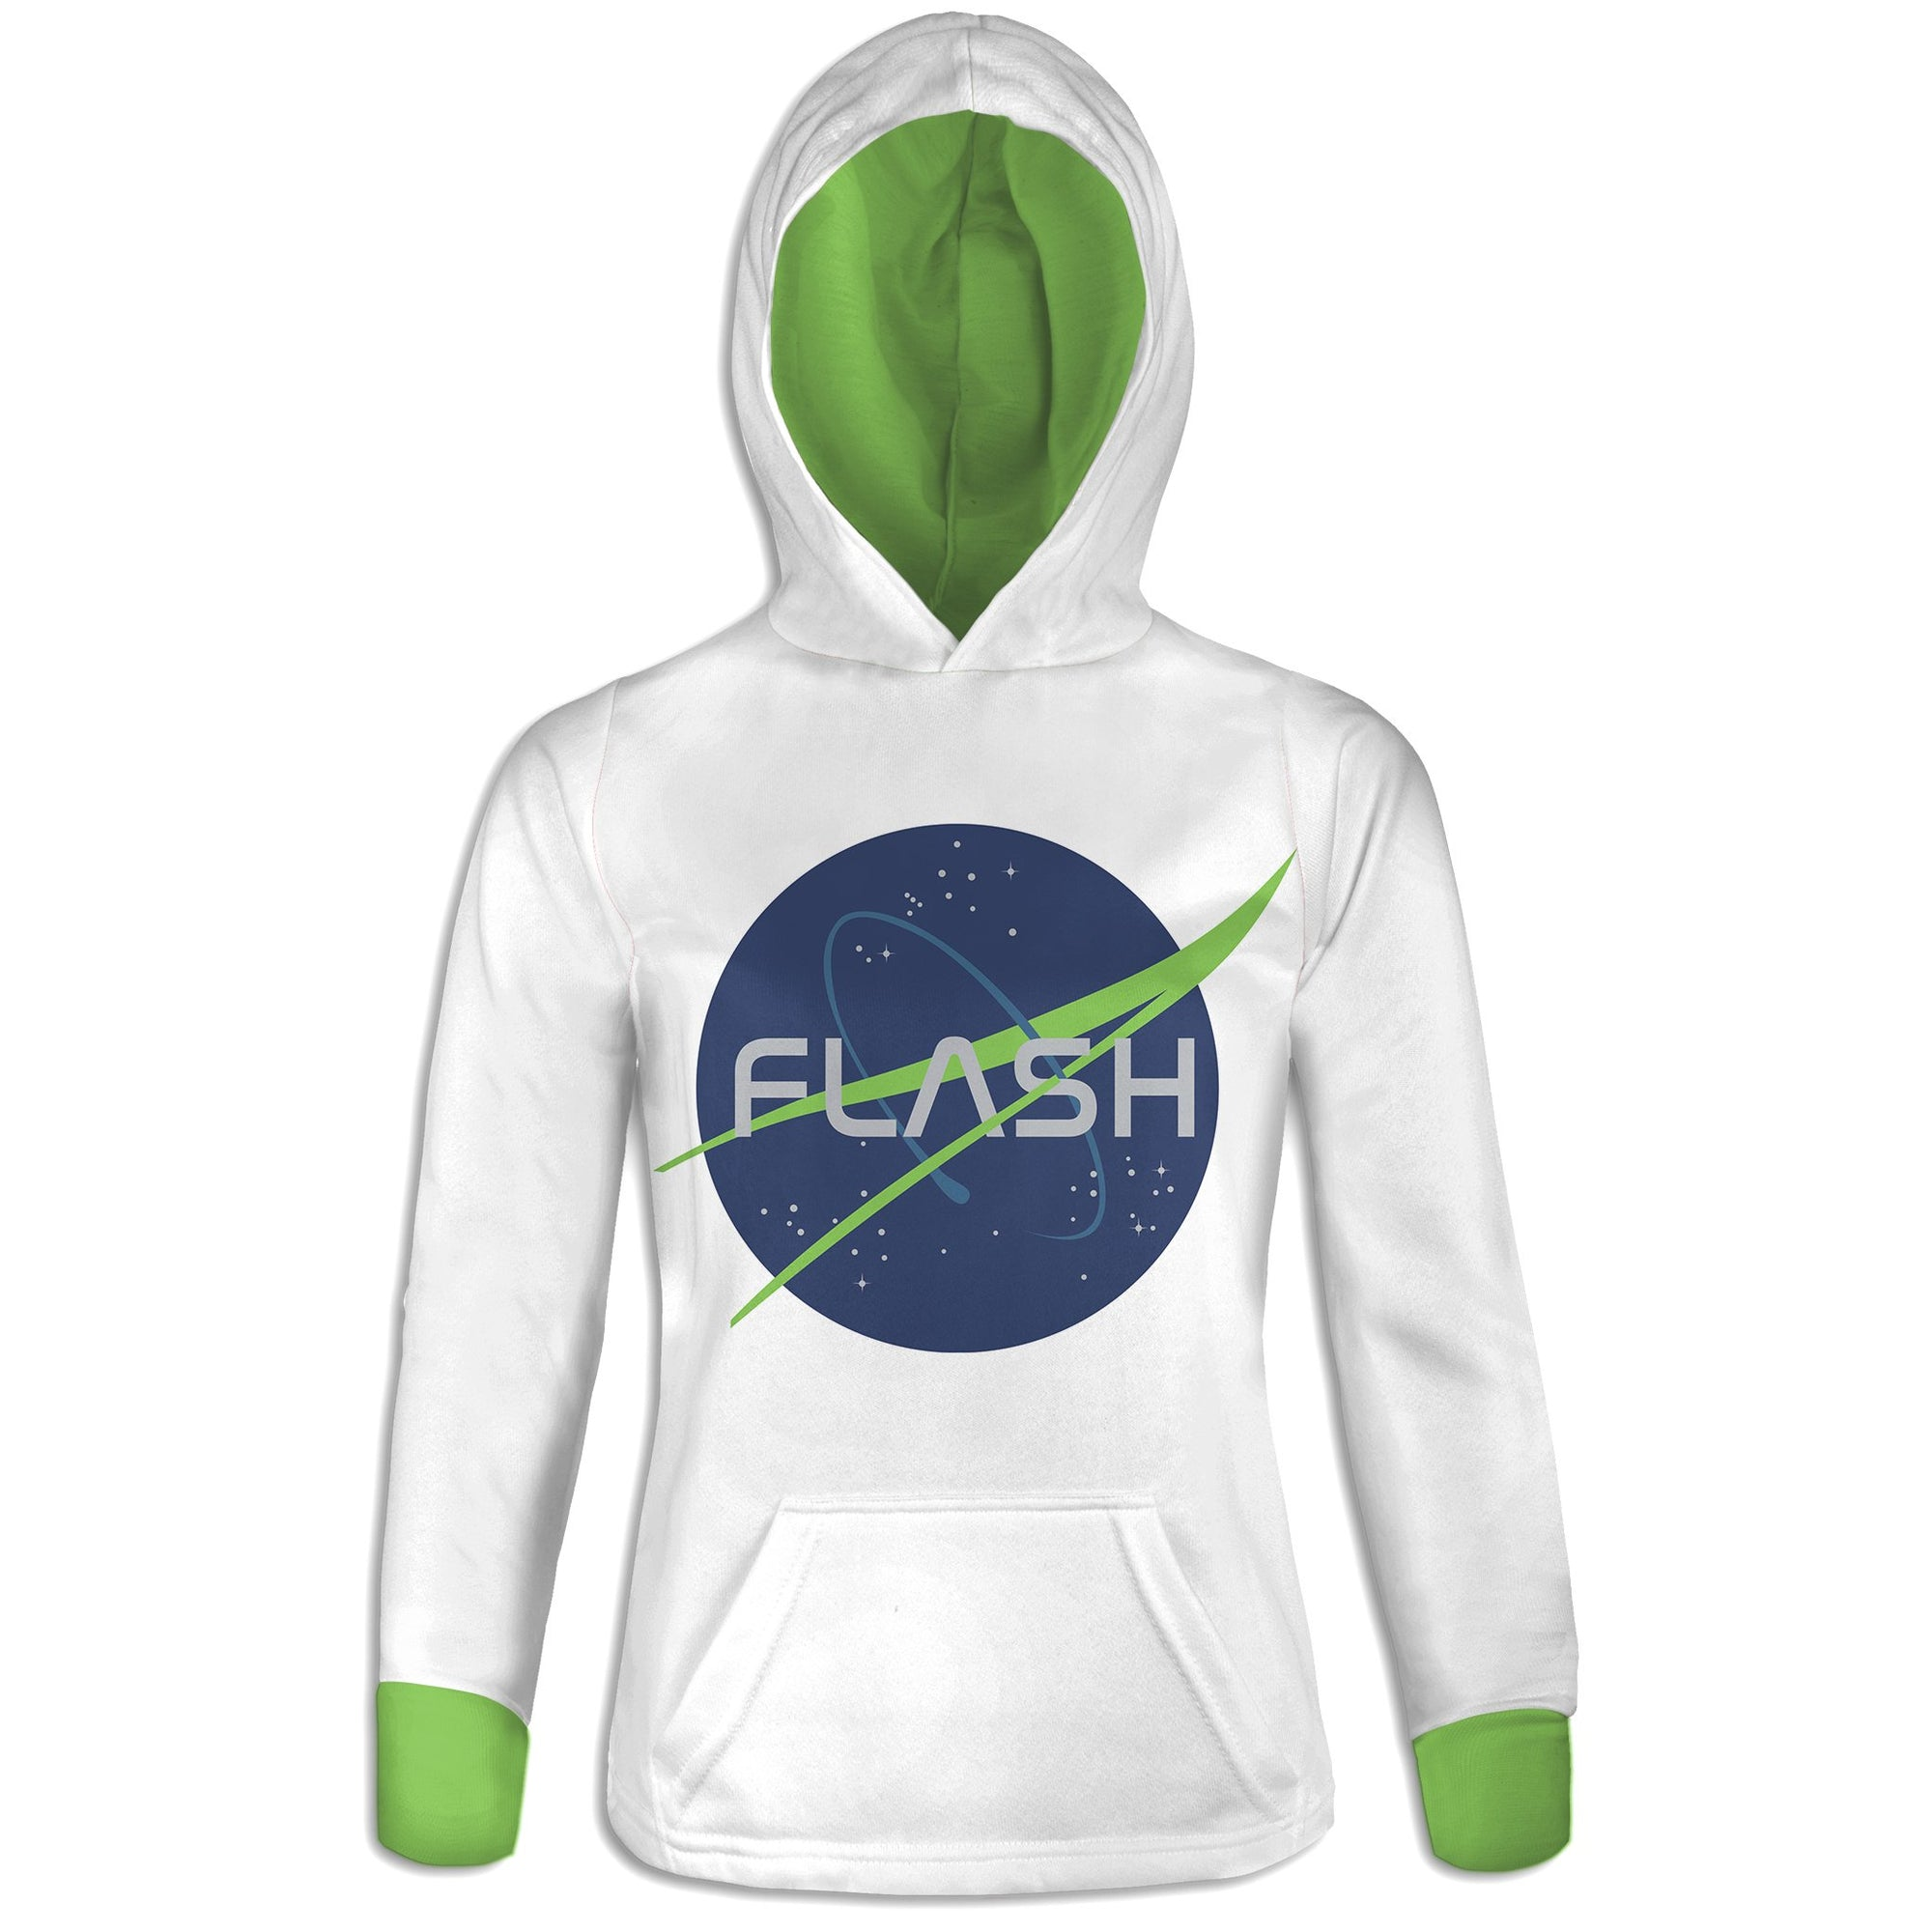 Flash Womens Hoodie | flashgordonshop.com